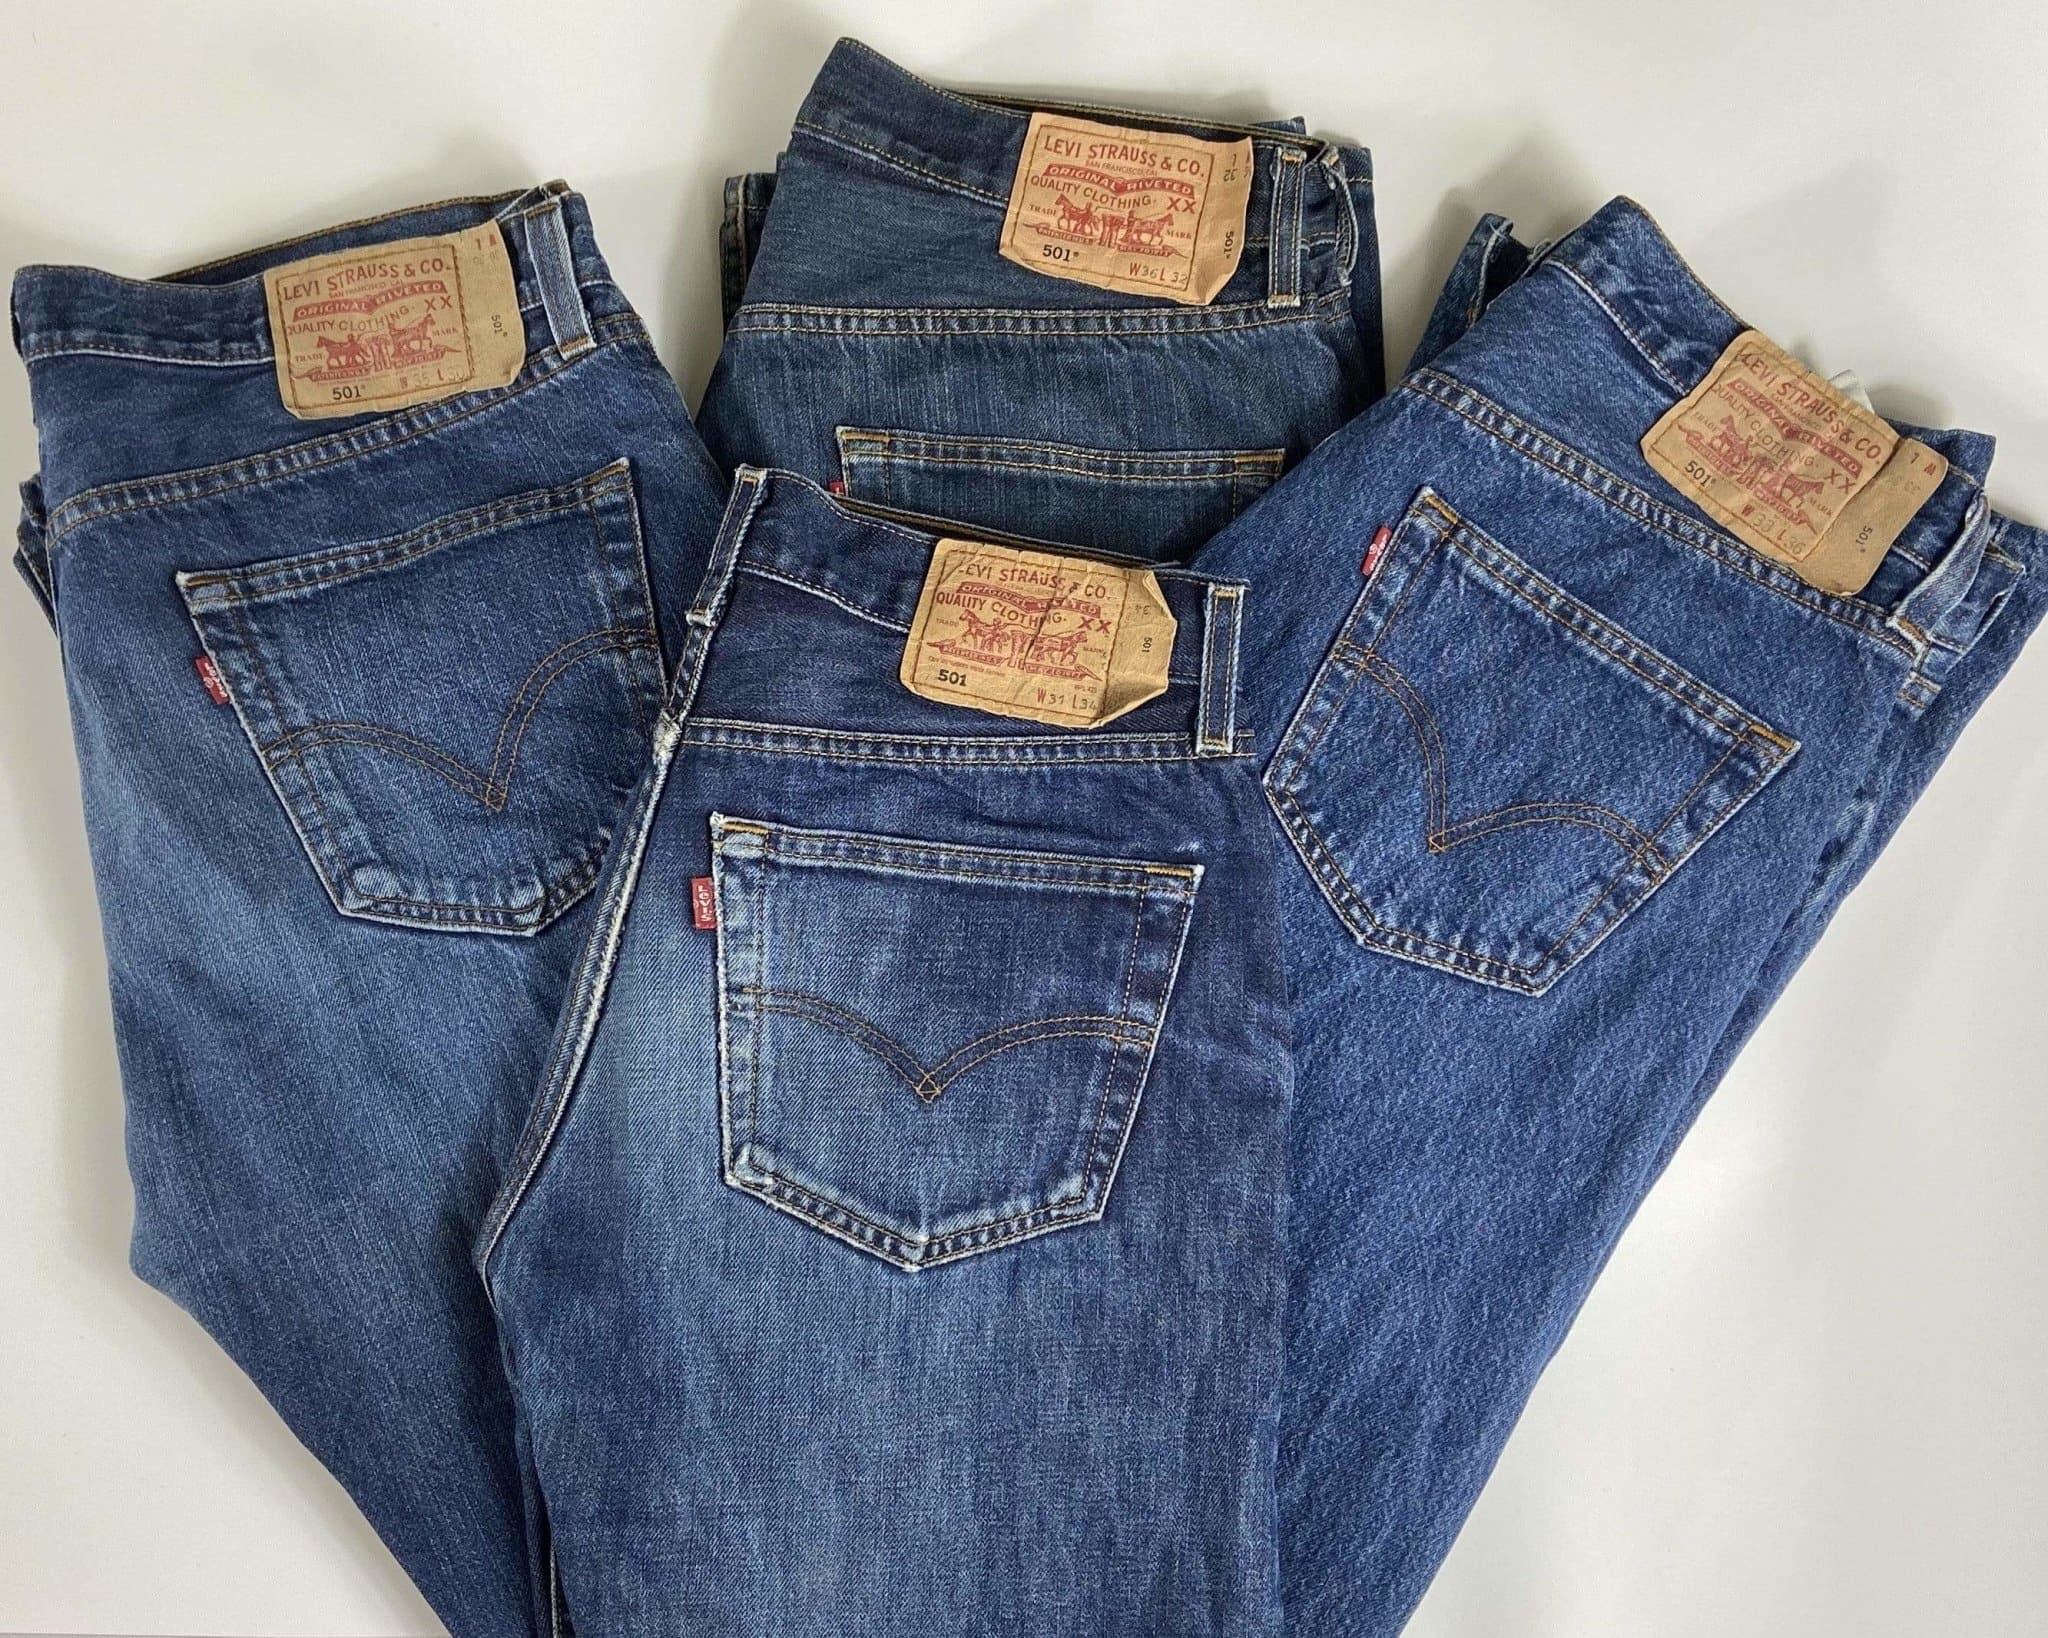 Vintage Levi's Regular Fit 501 Jeans W32 L30 (LVB3) - Discounted Deals UK